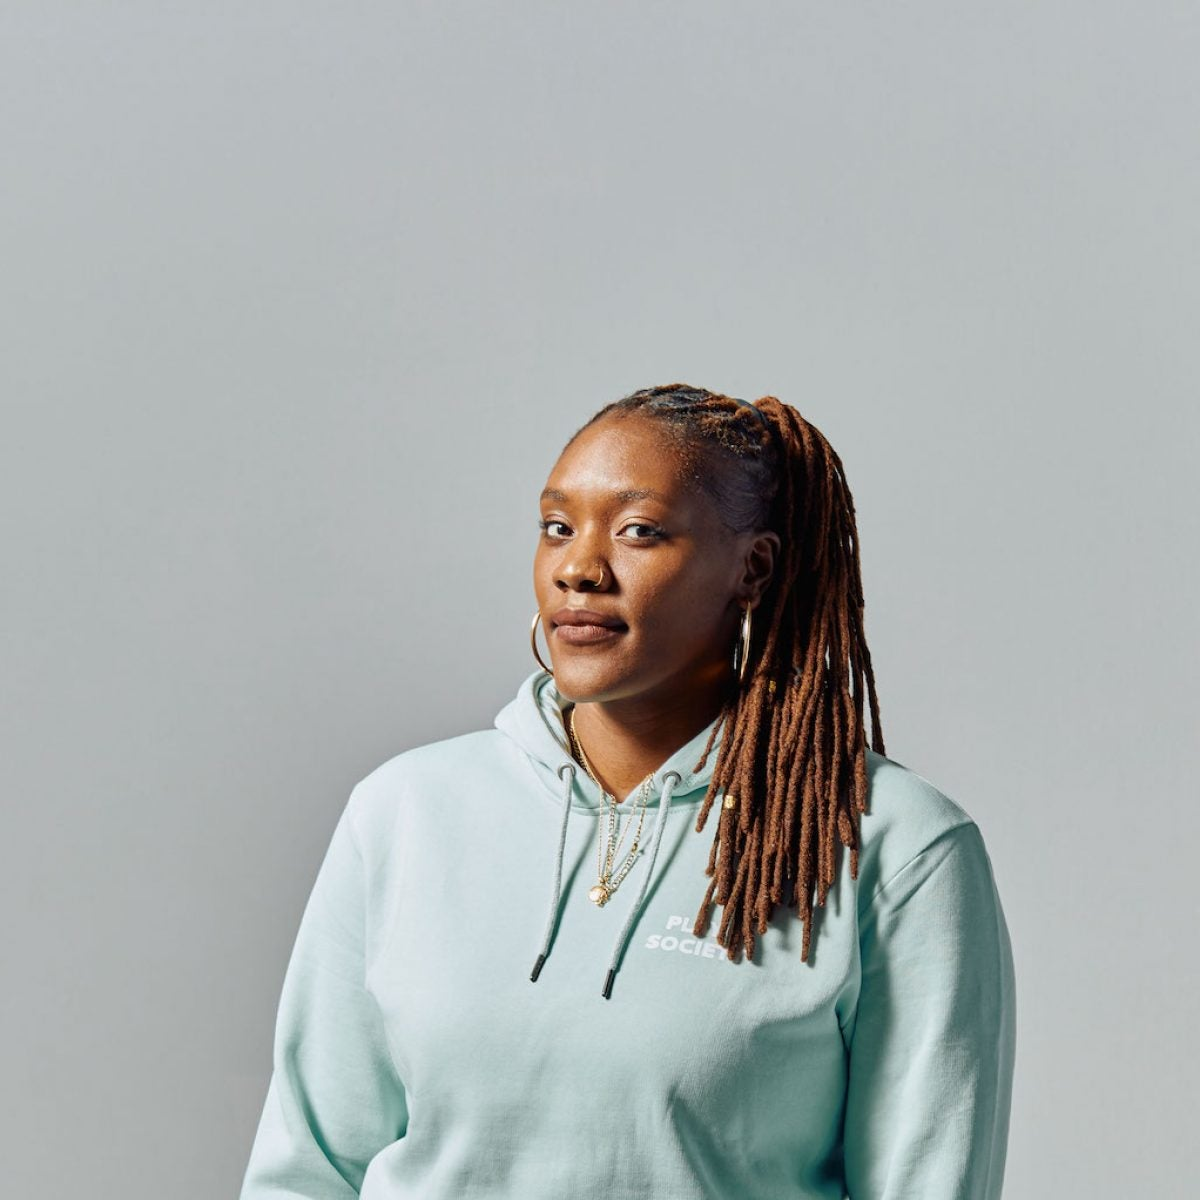 This Former Pro-Basketball Player Is Shifting The Way The World Views Women Athletes. Here's How